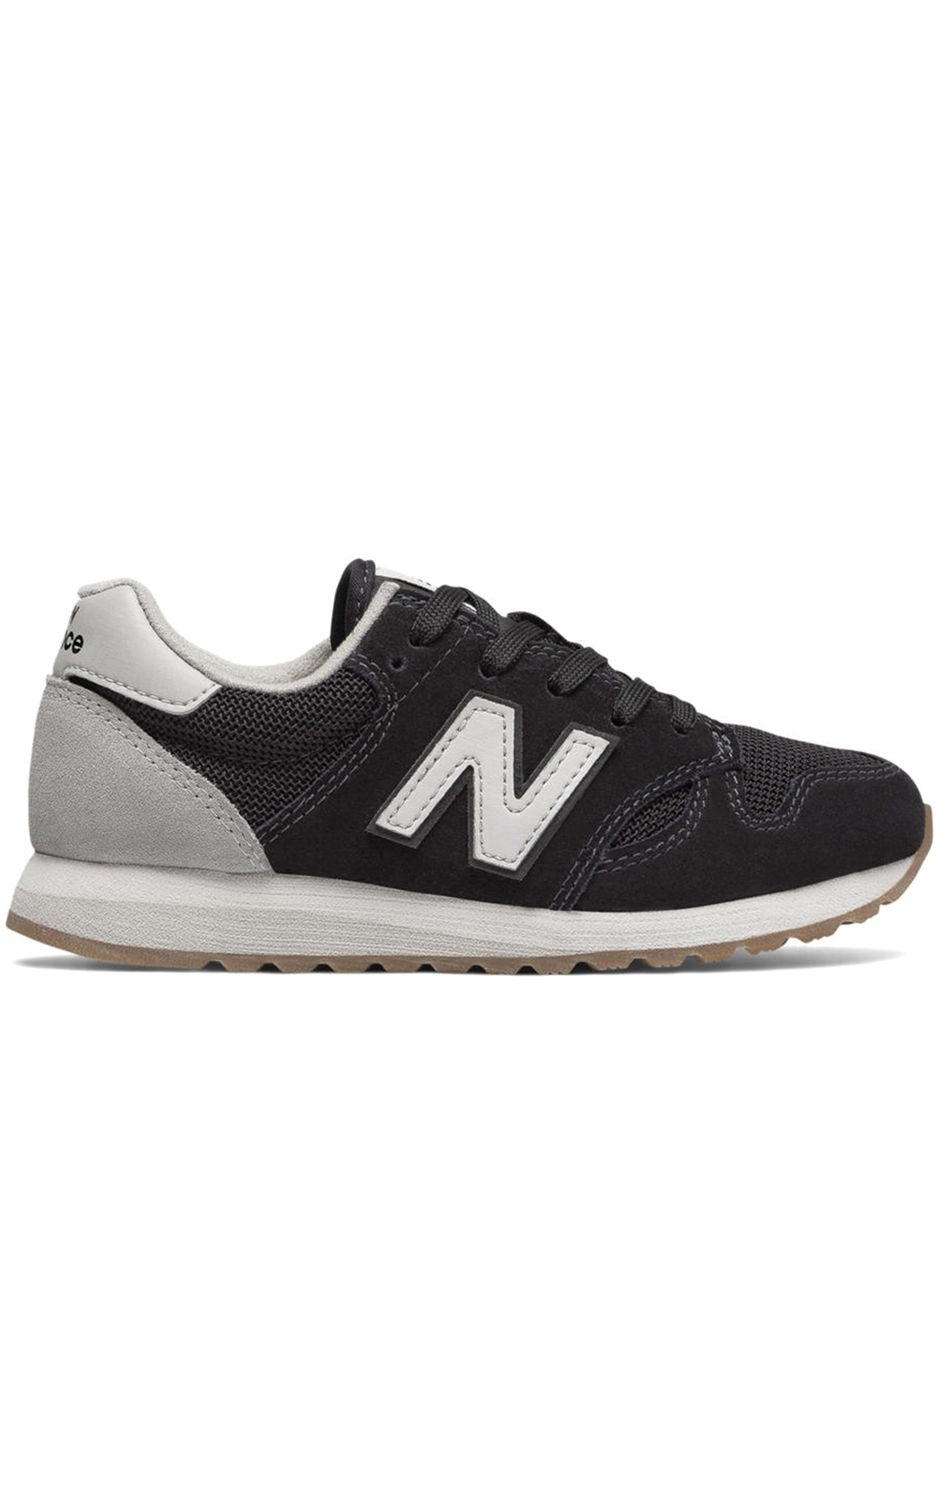 Tenis New Balance KL520 Black/White (048)